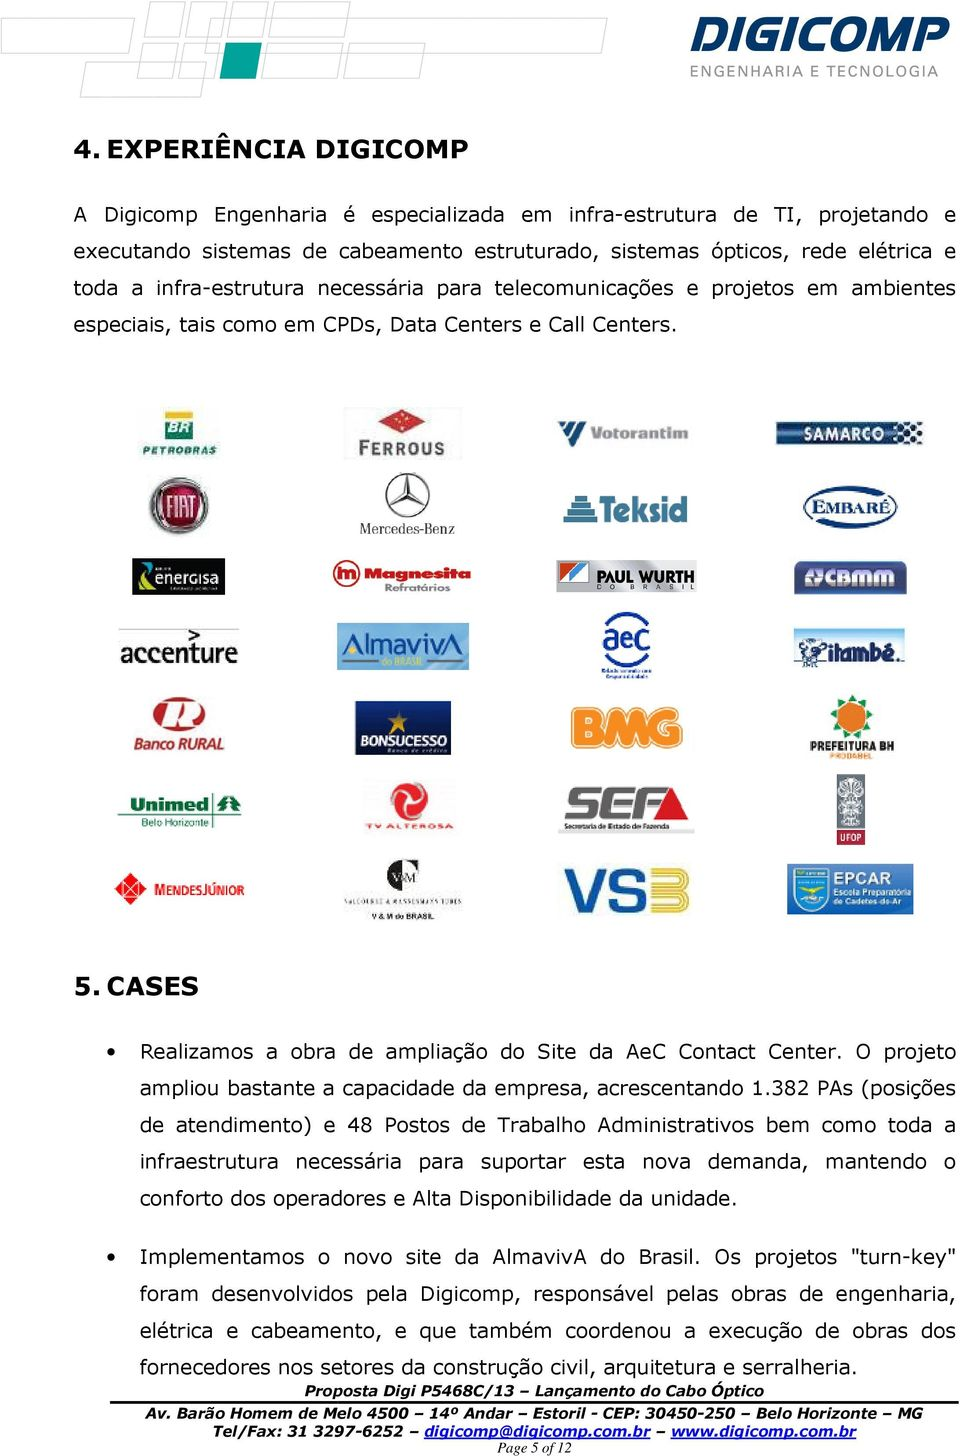 CASES Realizamos a obra de ampliação do Site da AeC Contact Center. O projeto ampliou bastante a capacidade da empresa, acrescentando 1.